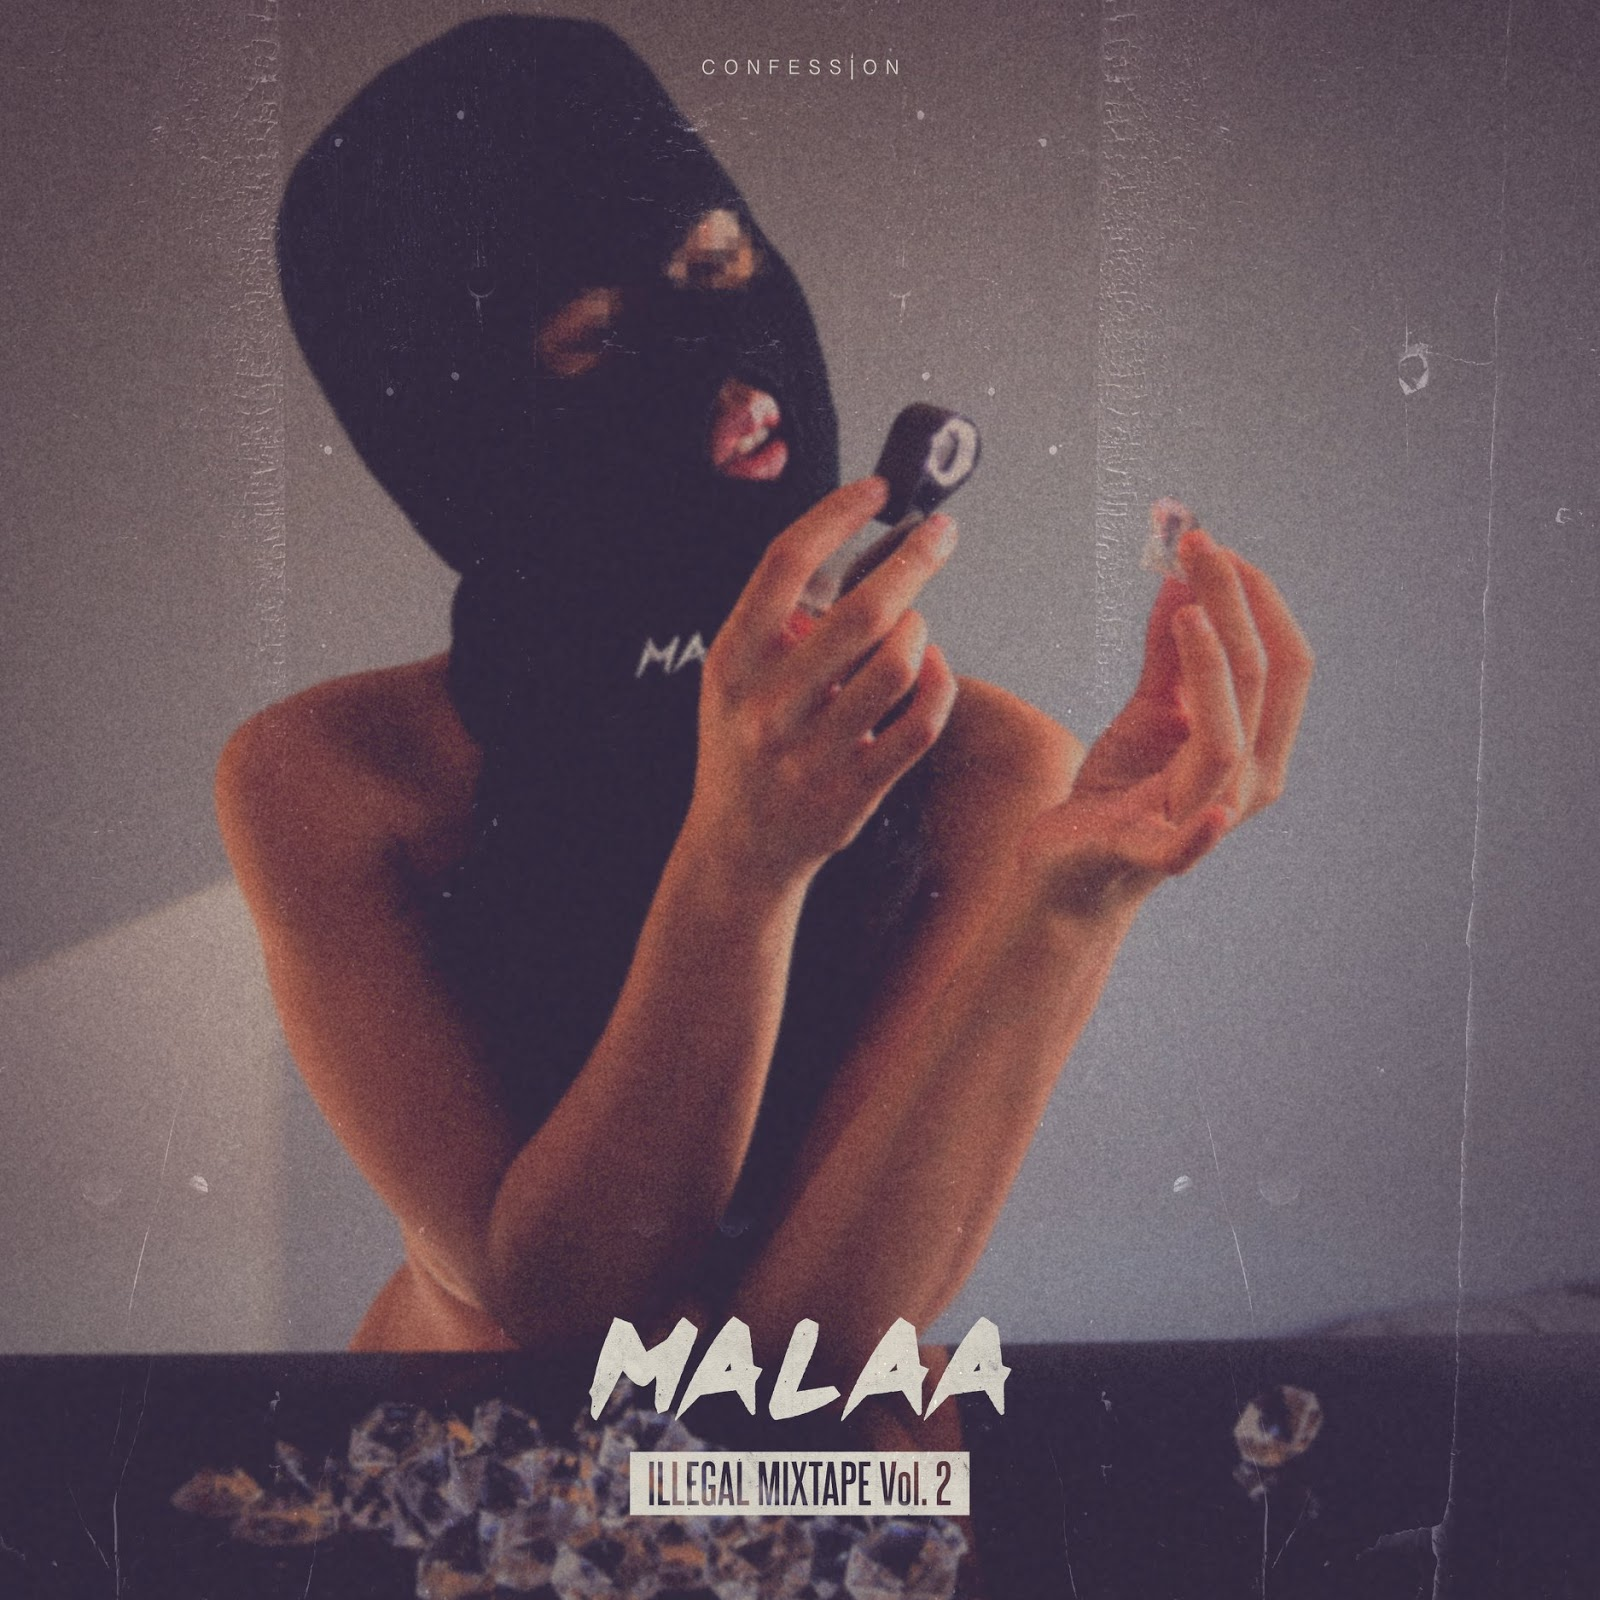 MALAA | ILLEGAL MIXTAPE VOL1 & VOL2